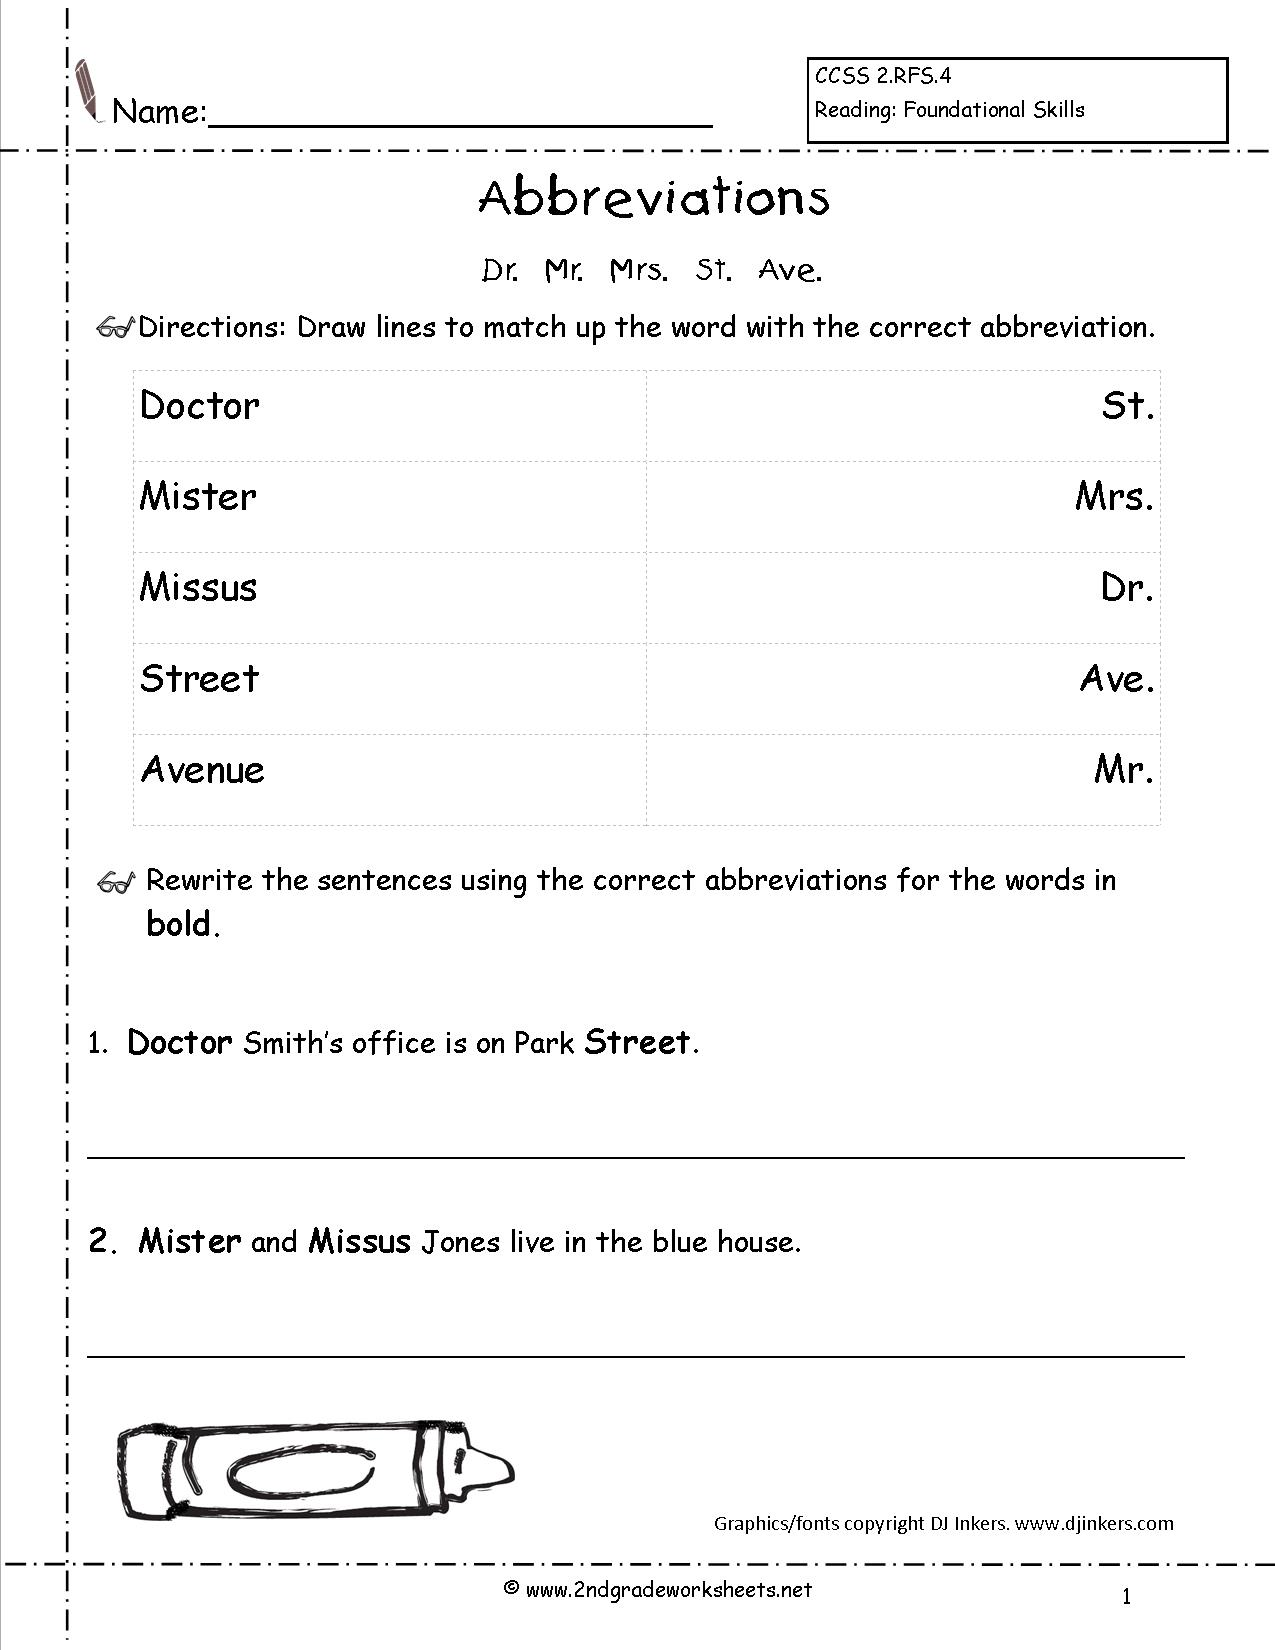 18 Best Images Of Abbreviation Worksheets For Students